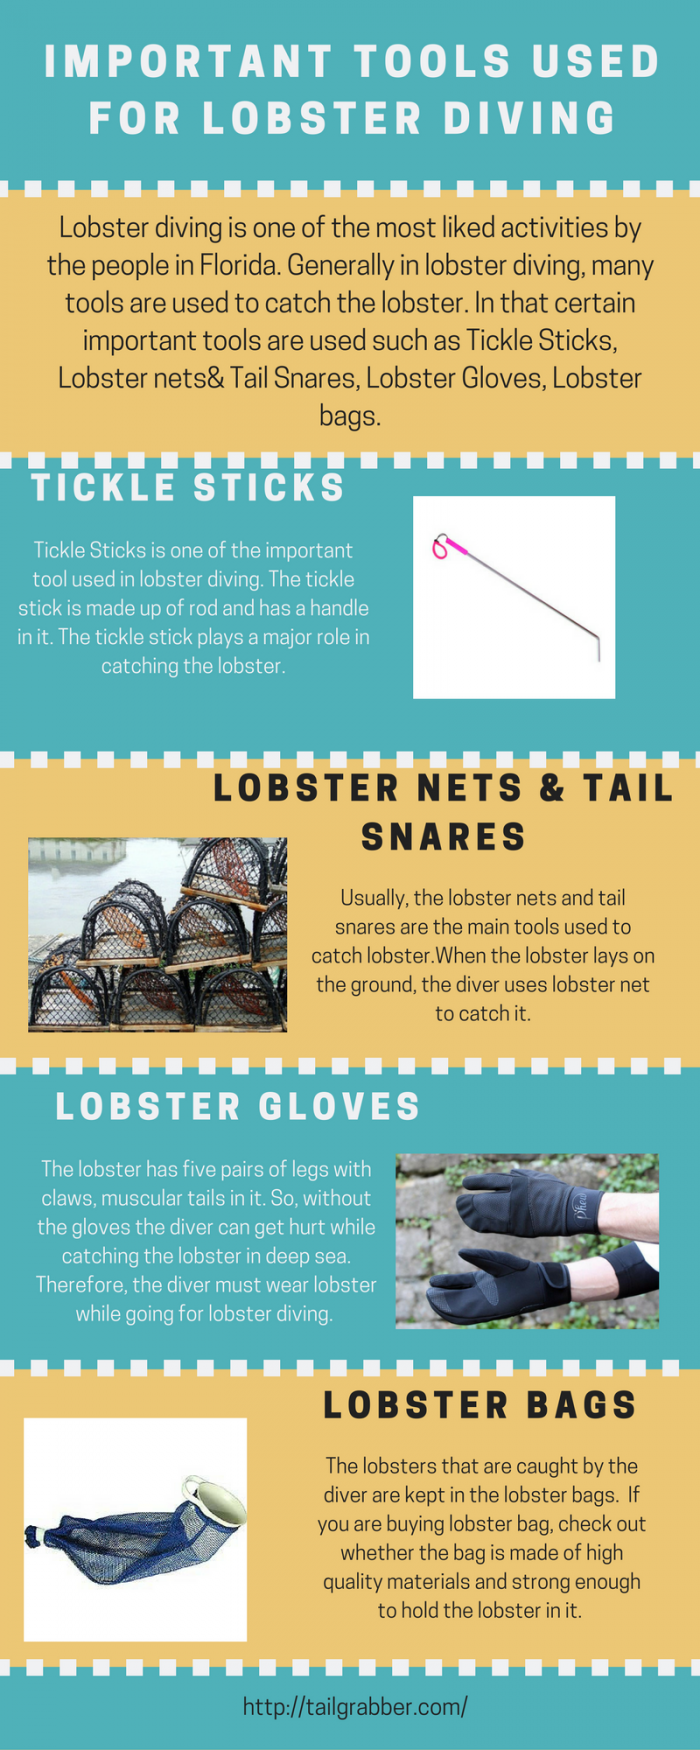 important-toos-for-lobster-diving-infographic-plaza